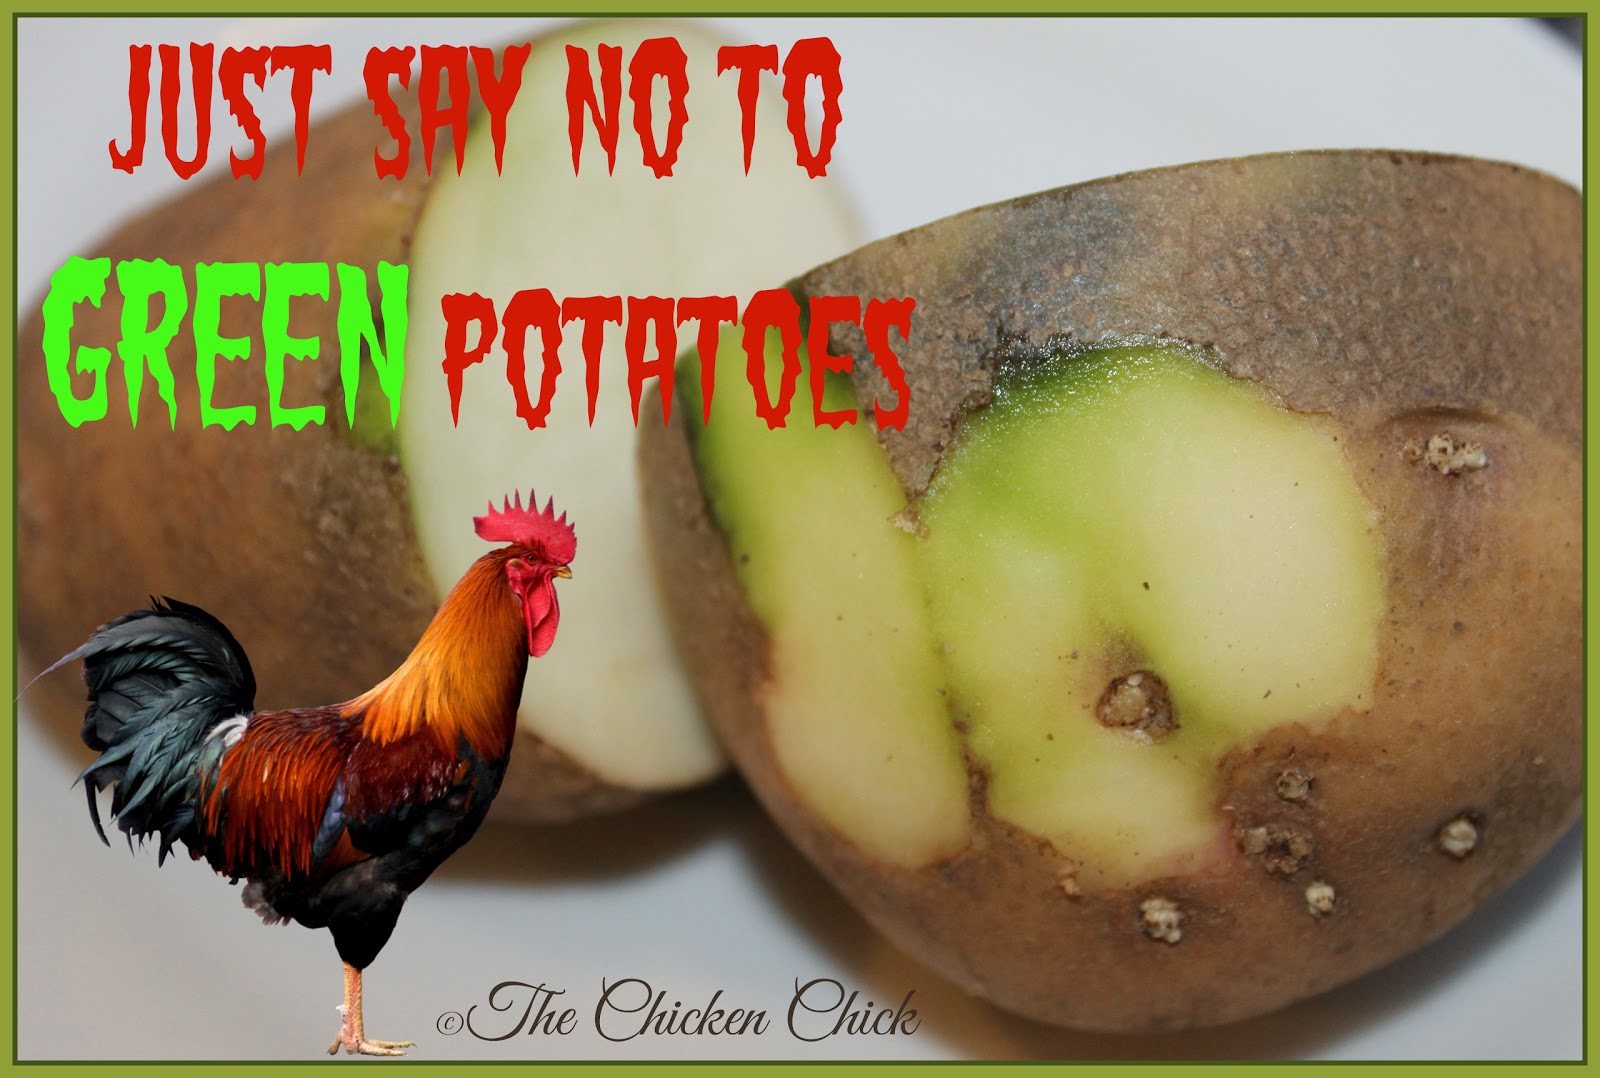 Fact: Potatoes are an acceptable treat for chickens. Green potatoes are not a safe treat.